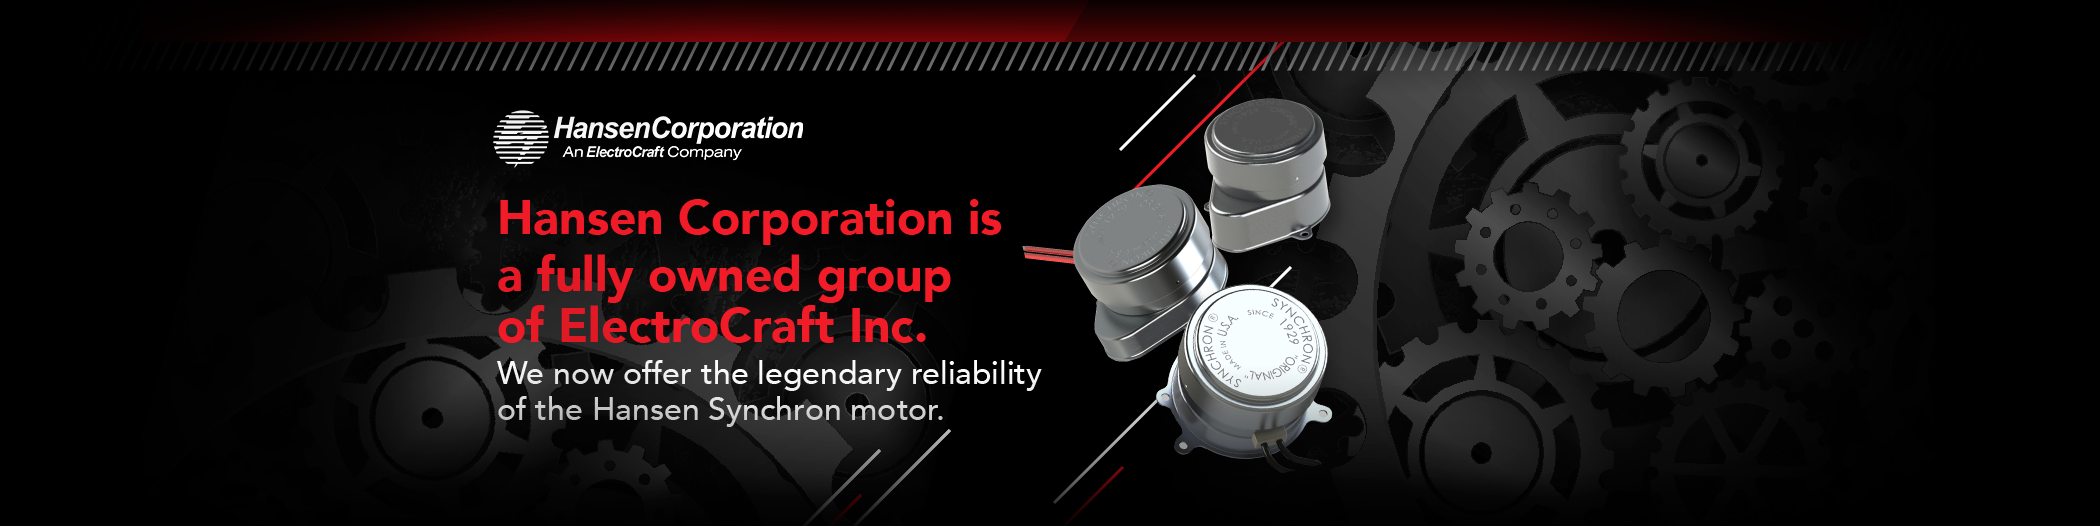 Hansen Corporation is a fully owned group of ElectroCraft Inc.  We now offer the legendary reliability of the Hansen Synchron motor.